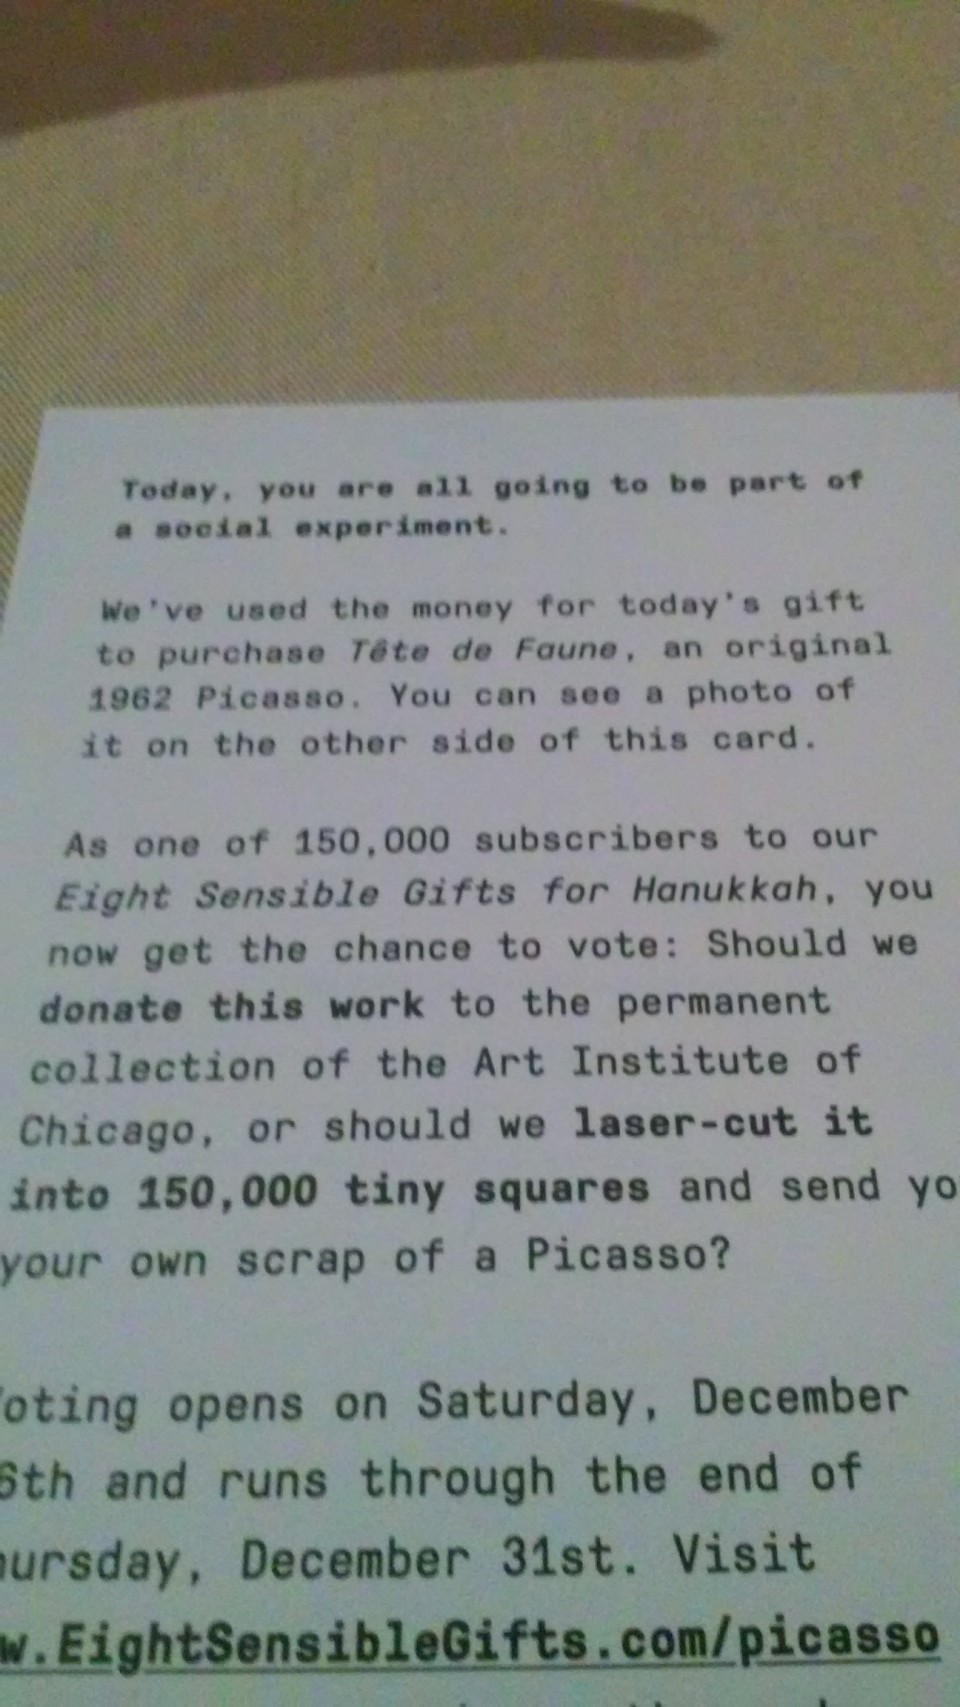 If you can't read this, it basically says that they used the money to buy an original Picasso, and you have to go to this website to vote whether to donate it to an art museum or cut it into 150,000 tiny squares.